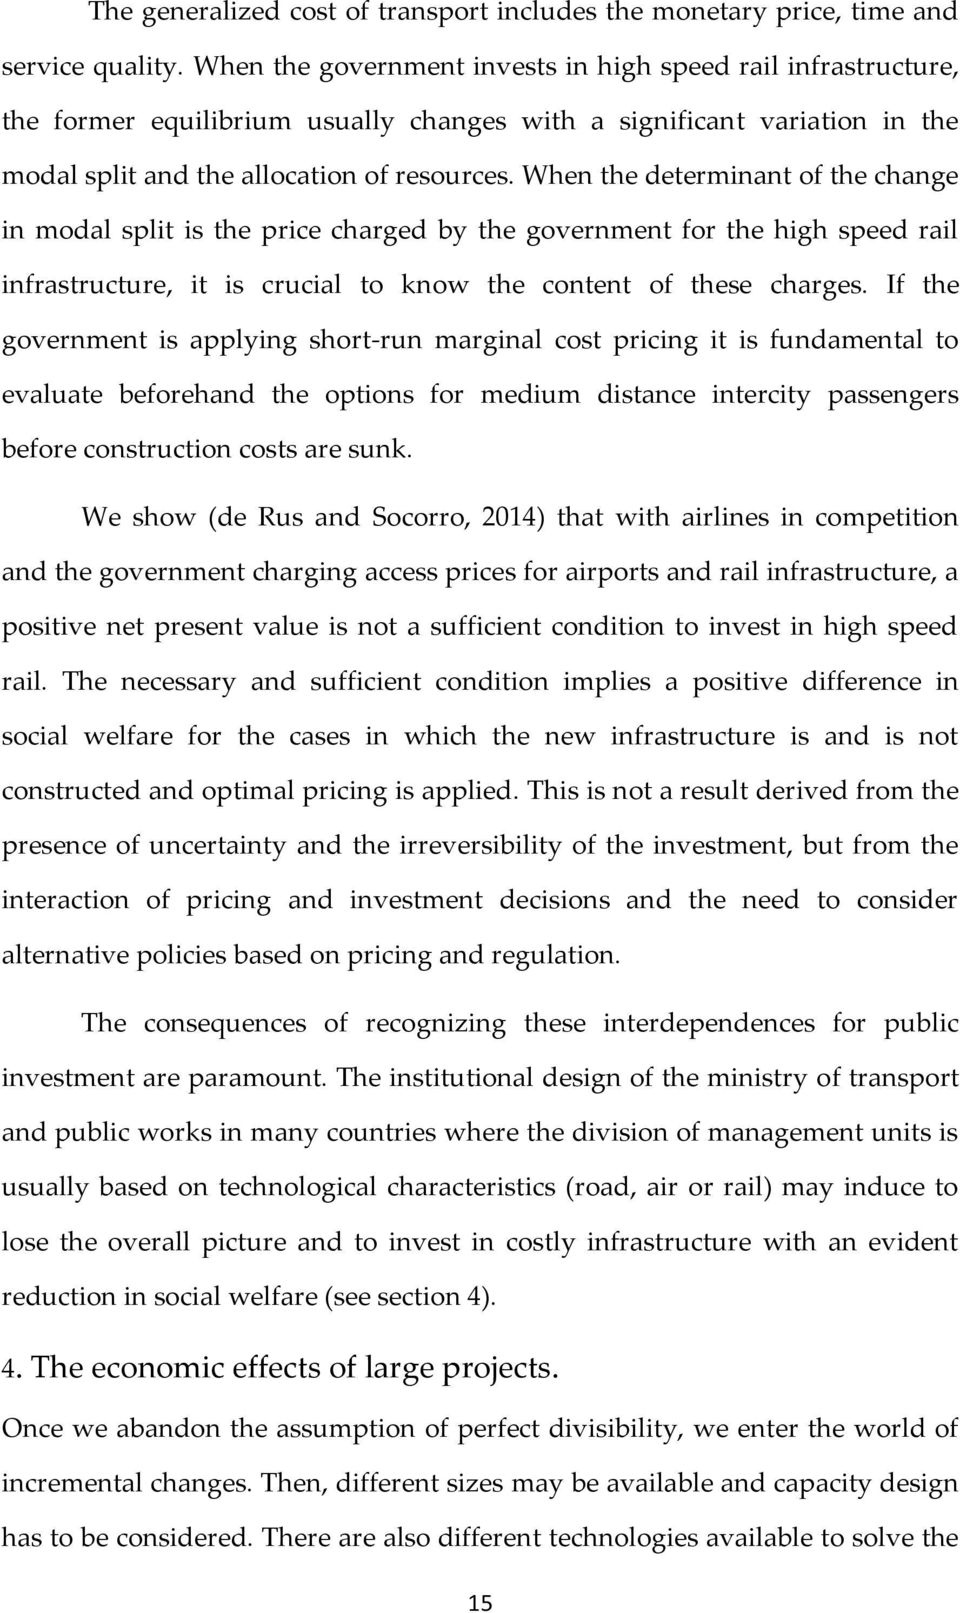 When the determinant of the change in modal split is the price charged by the government for the high speed rail infrastructure, it is crucial to know the content of these charges.